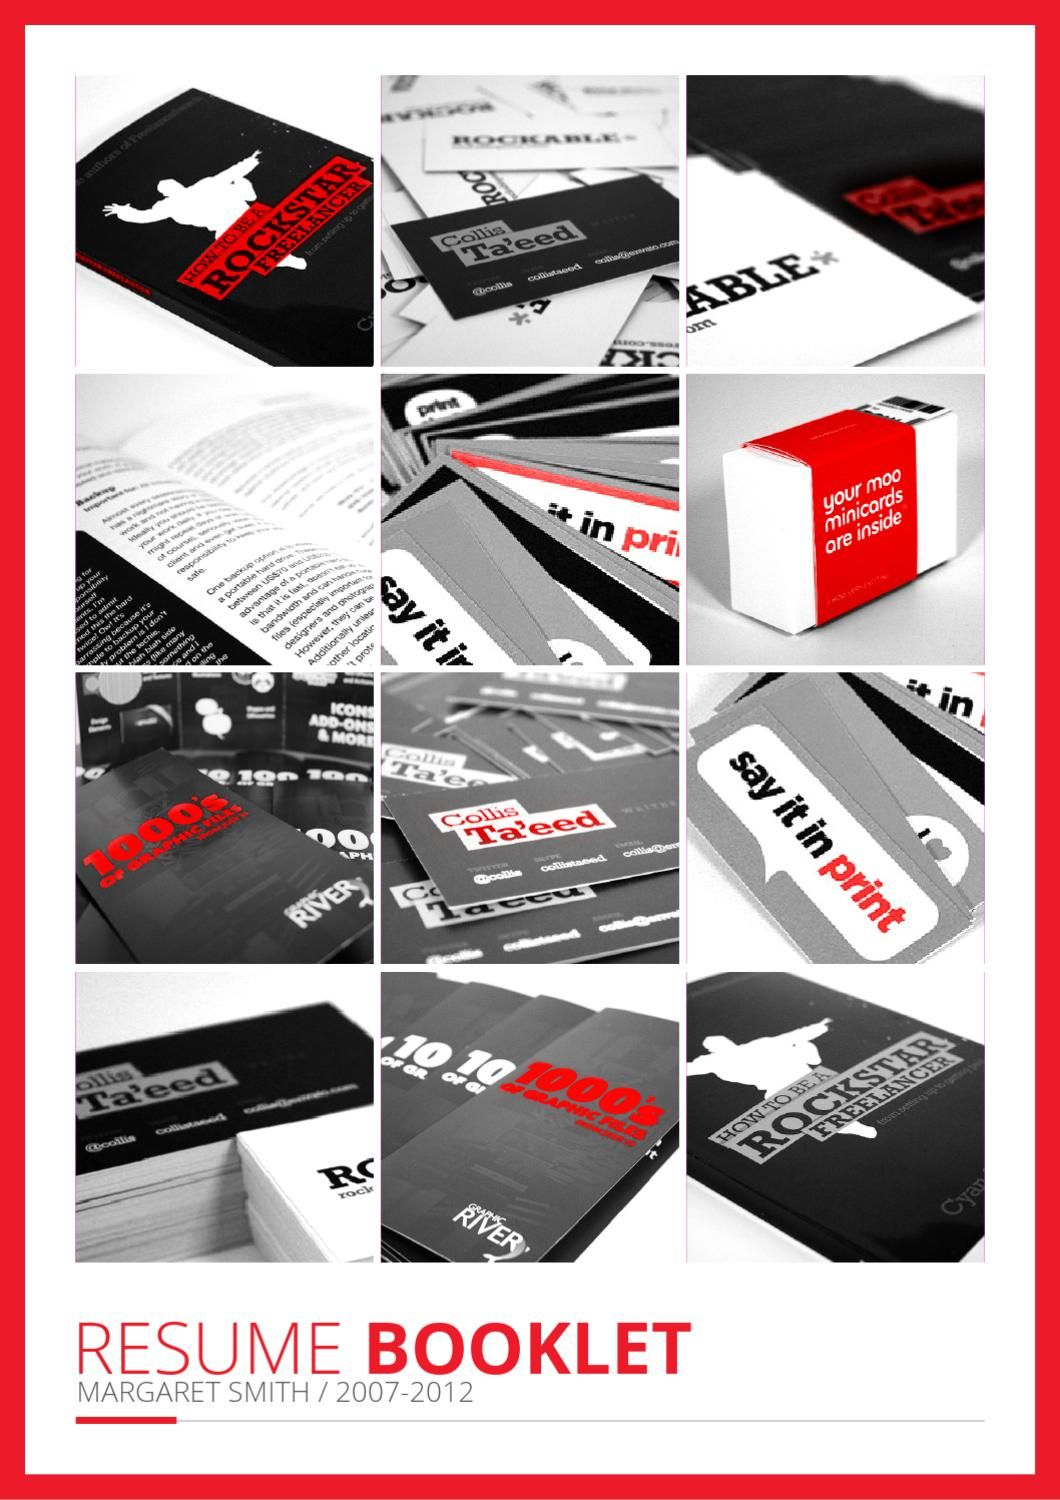 Resume booklet resume design pinterest booklet template resume booklet this is resume booklet template avalible for buy form graphicriver click maxwellsz